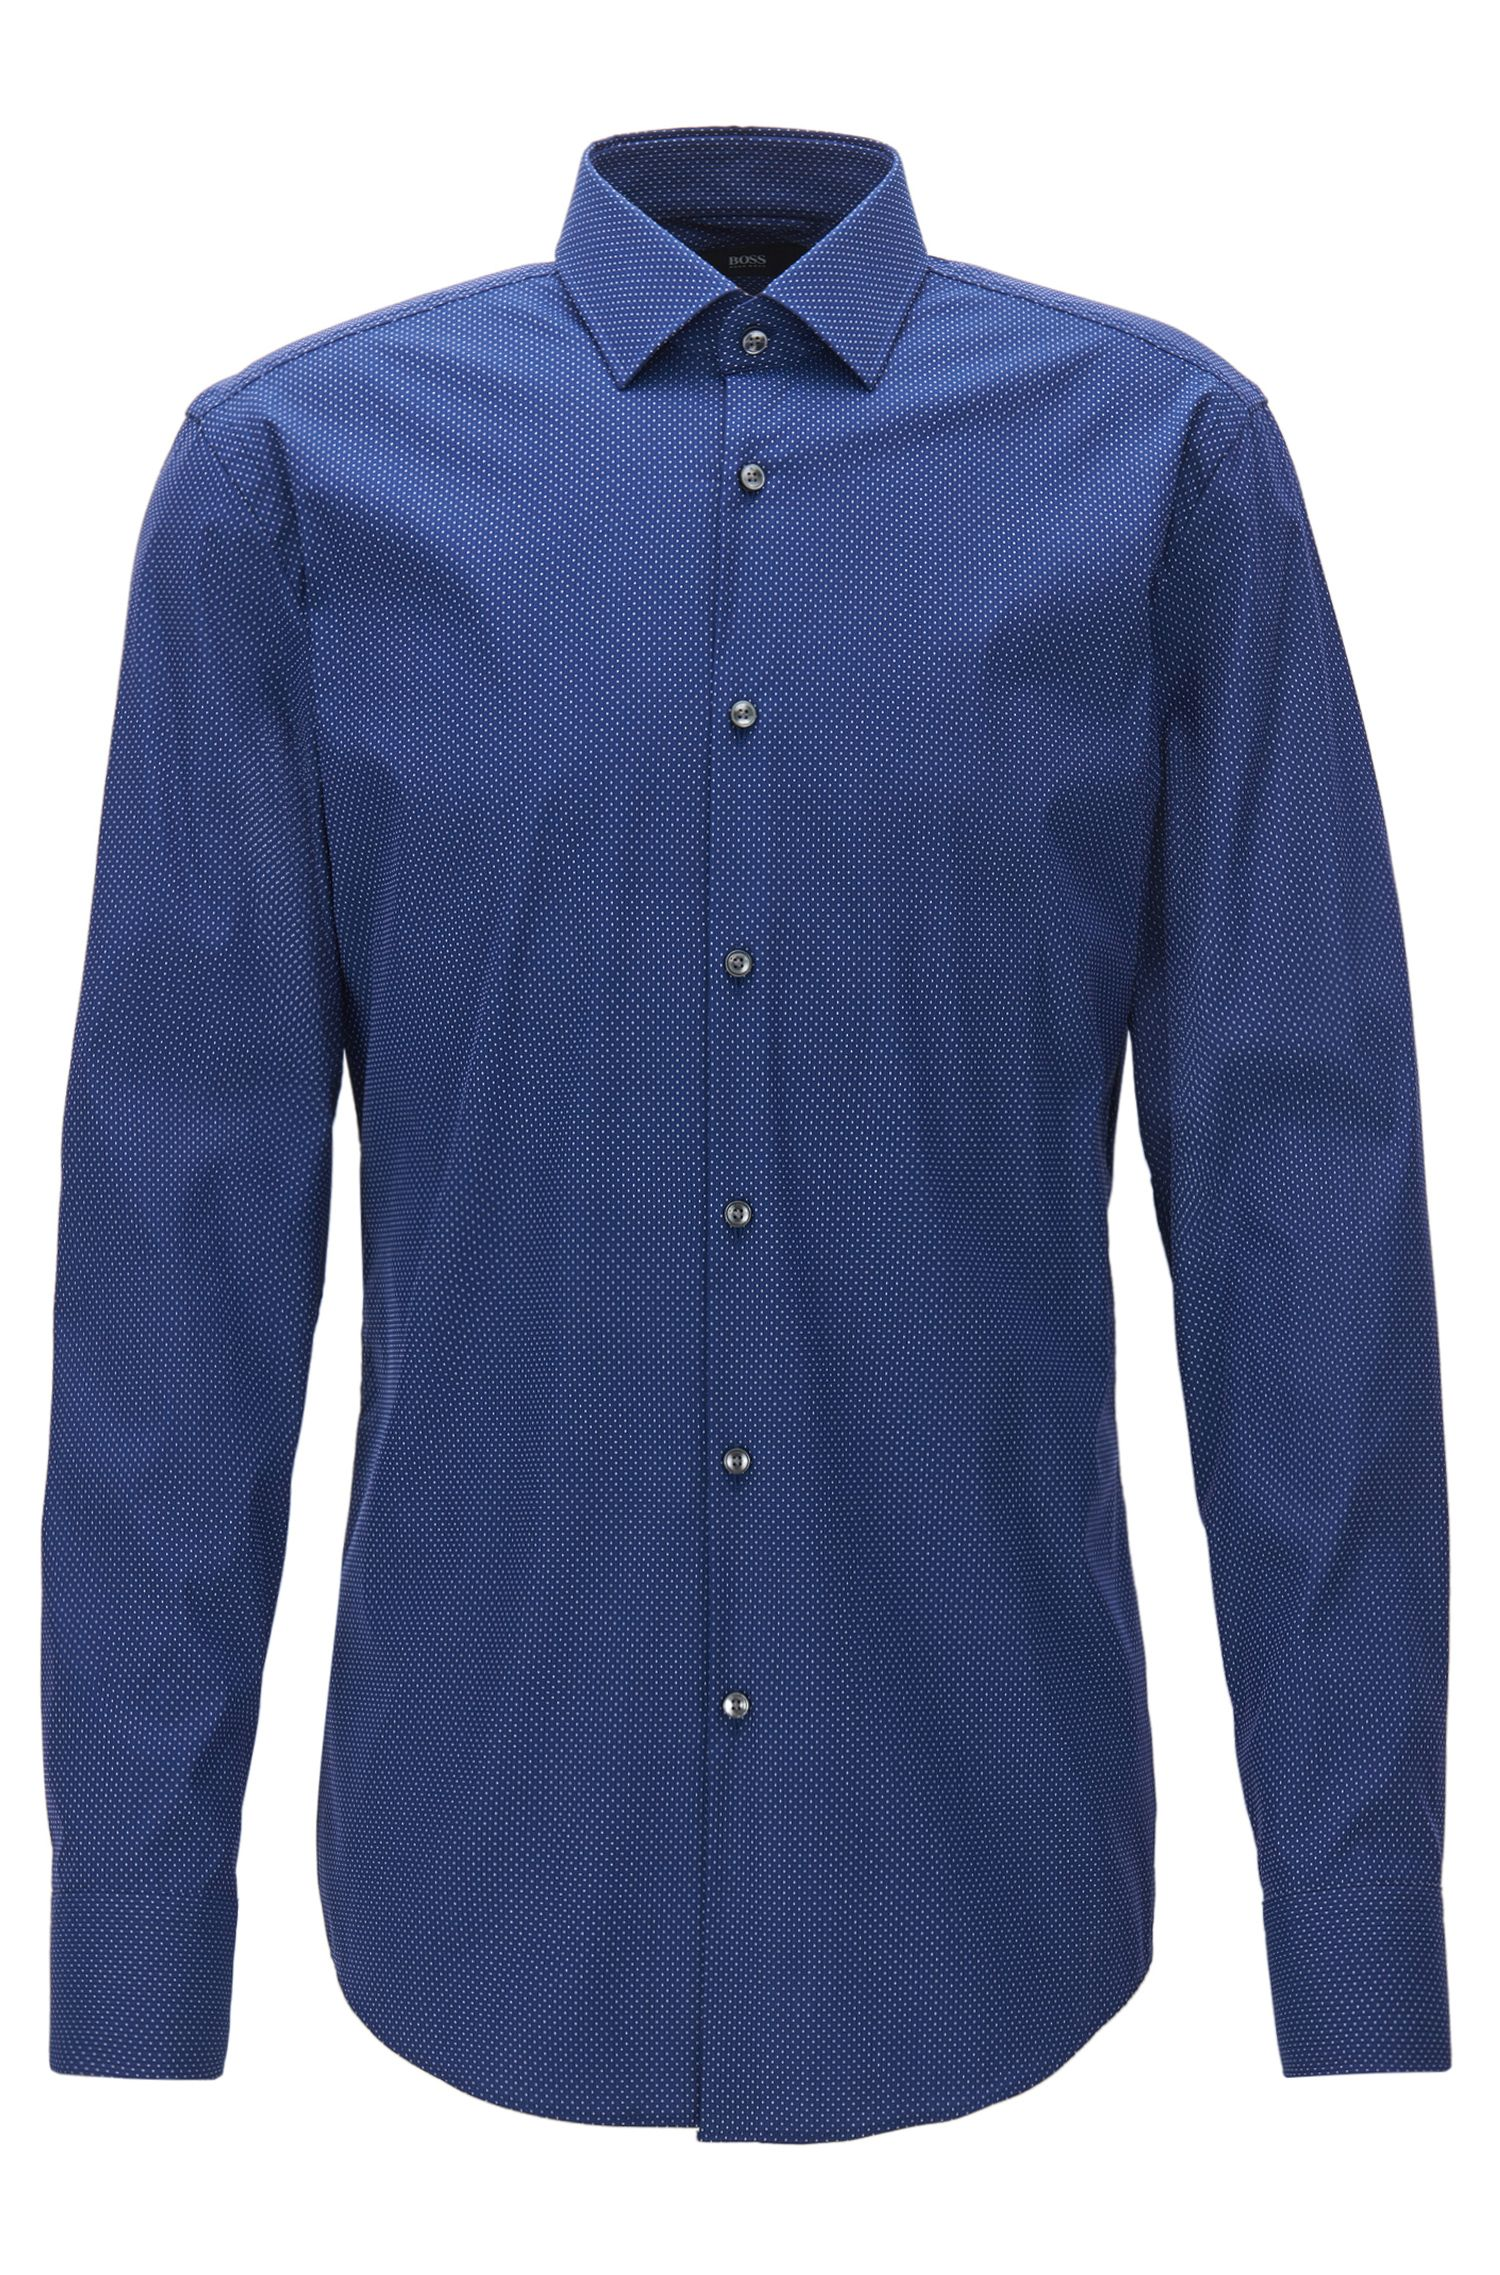 Slim-fit shirt in textured stretch fabric